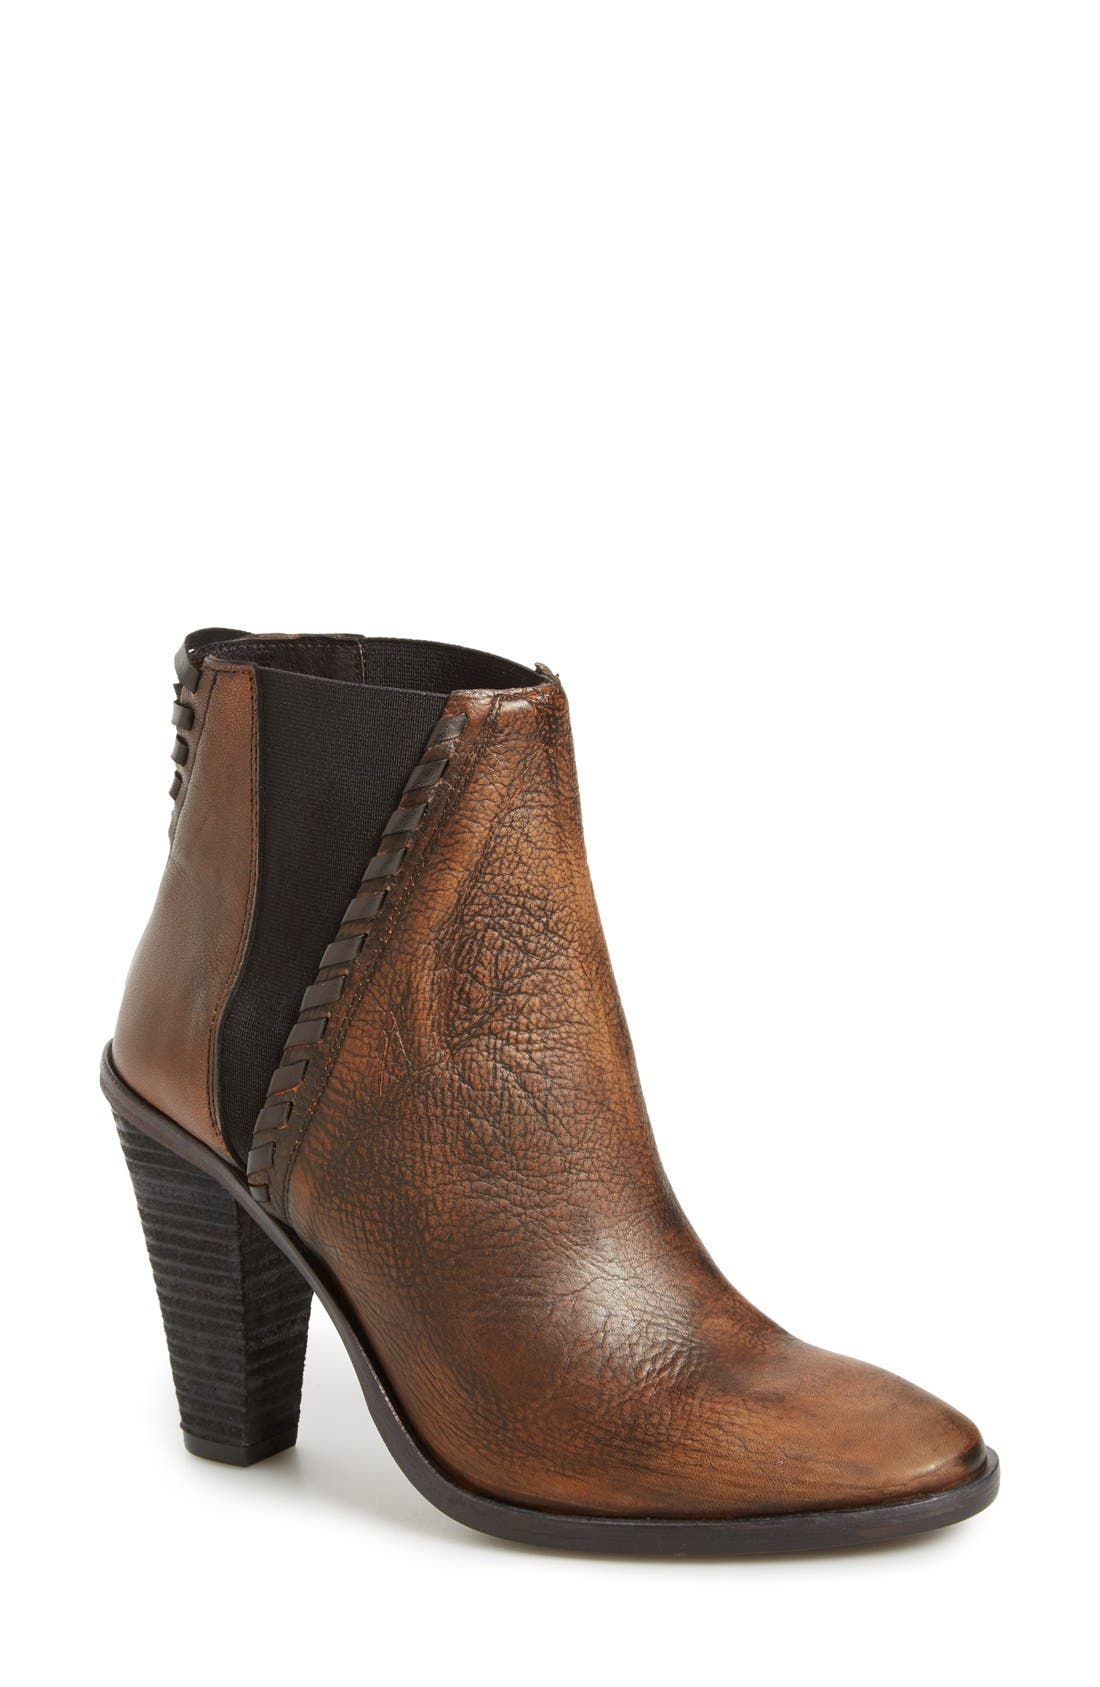 'Stardust' Chelsea Boot,                             Main thumbnail 1, color,                             Brown/ Bronze Leather